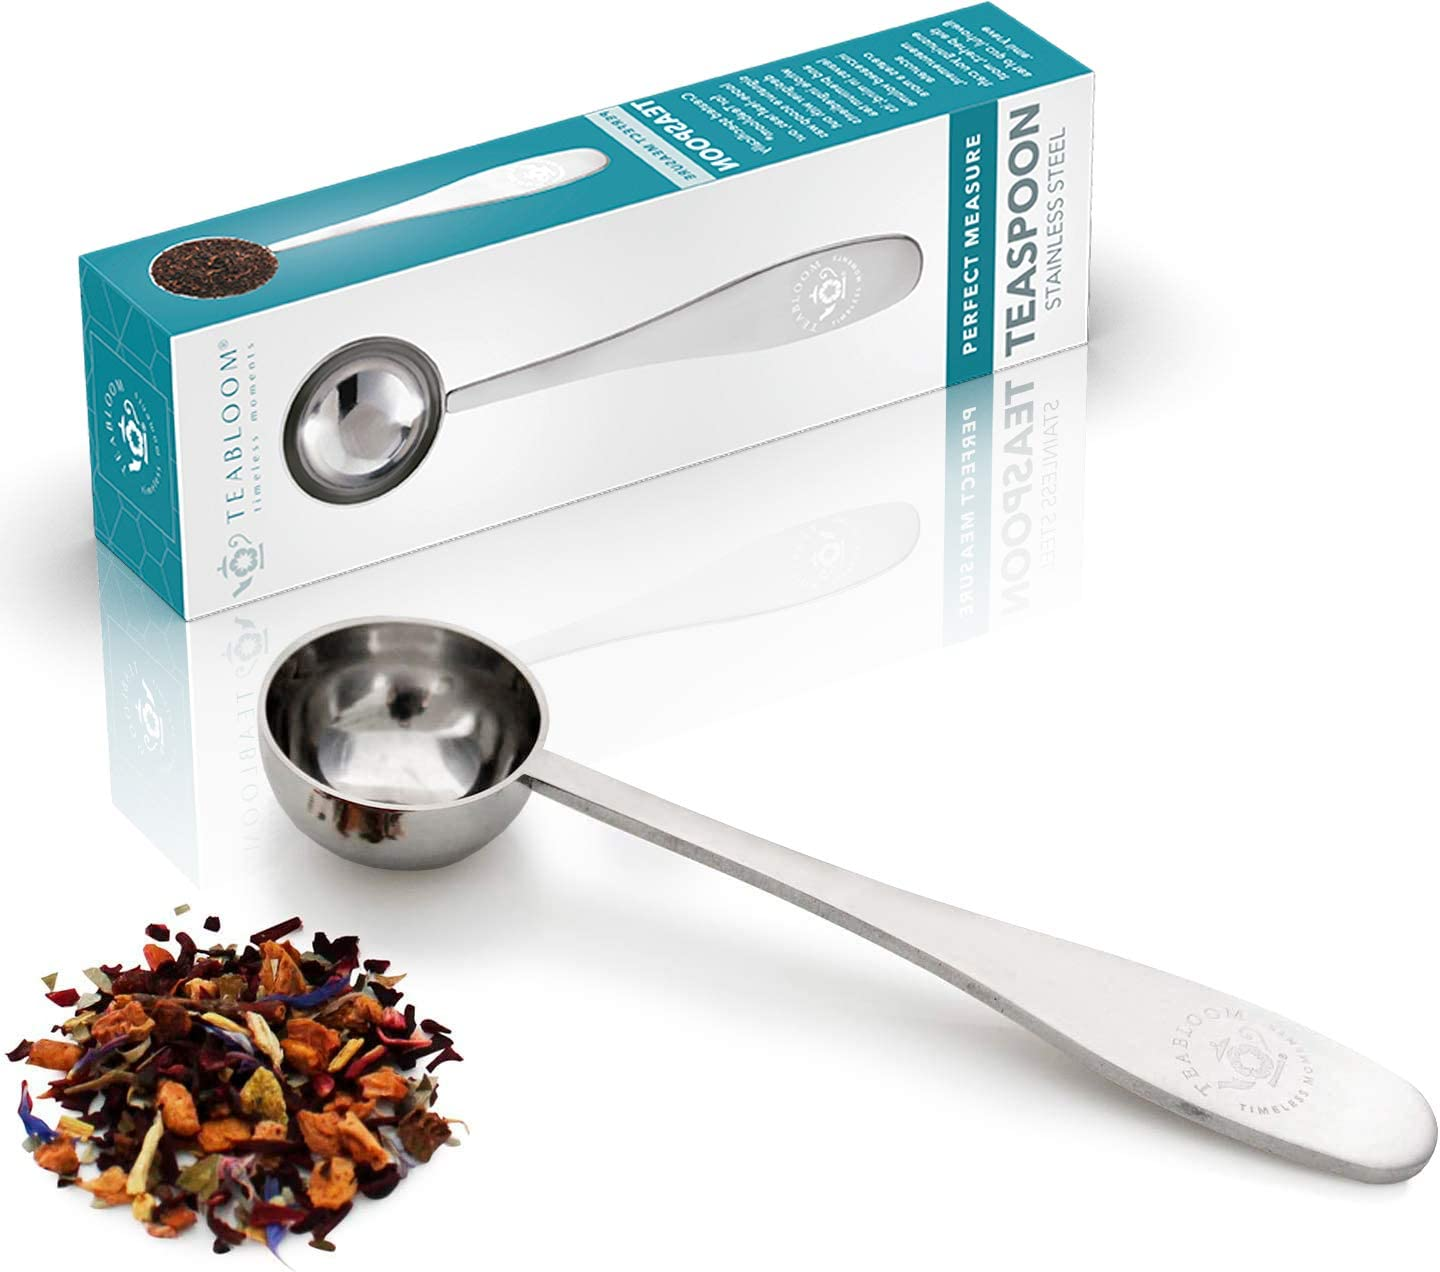 Teabloom Perfect Measure Loose Leaf Premium Tea Spoon Popular brand in the world Quality - Chicago Mall